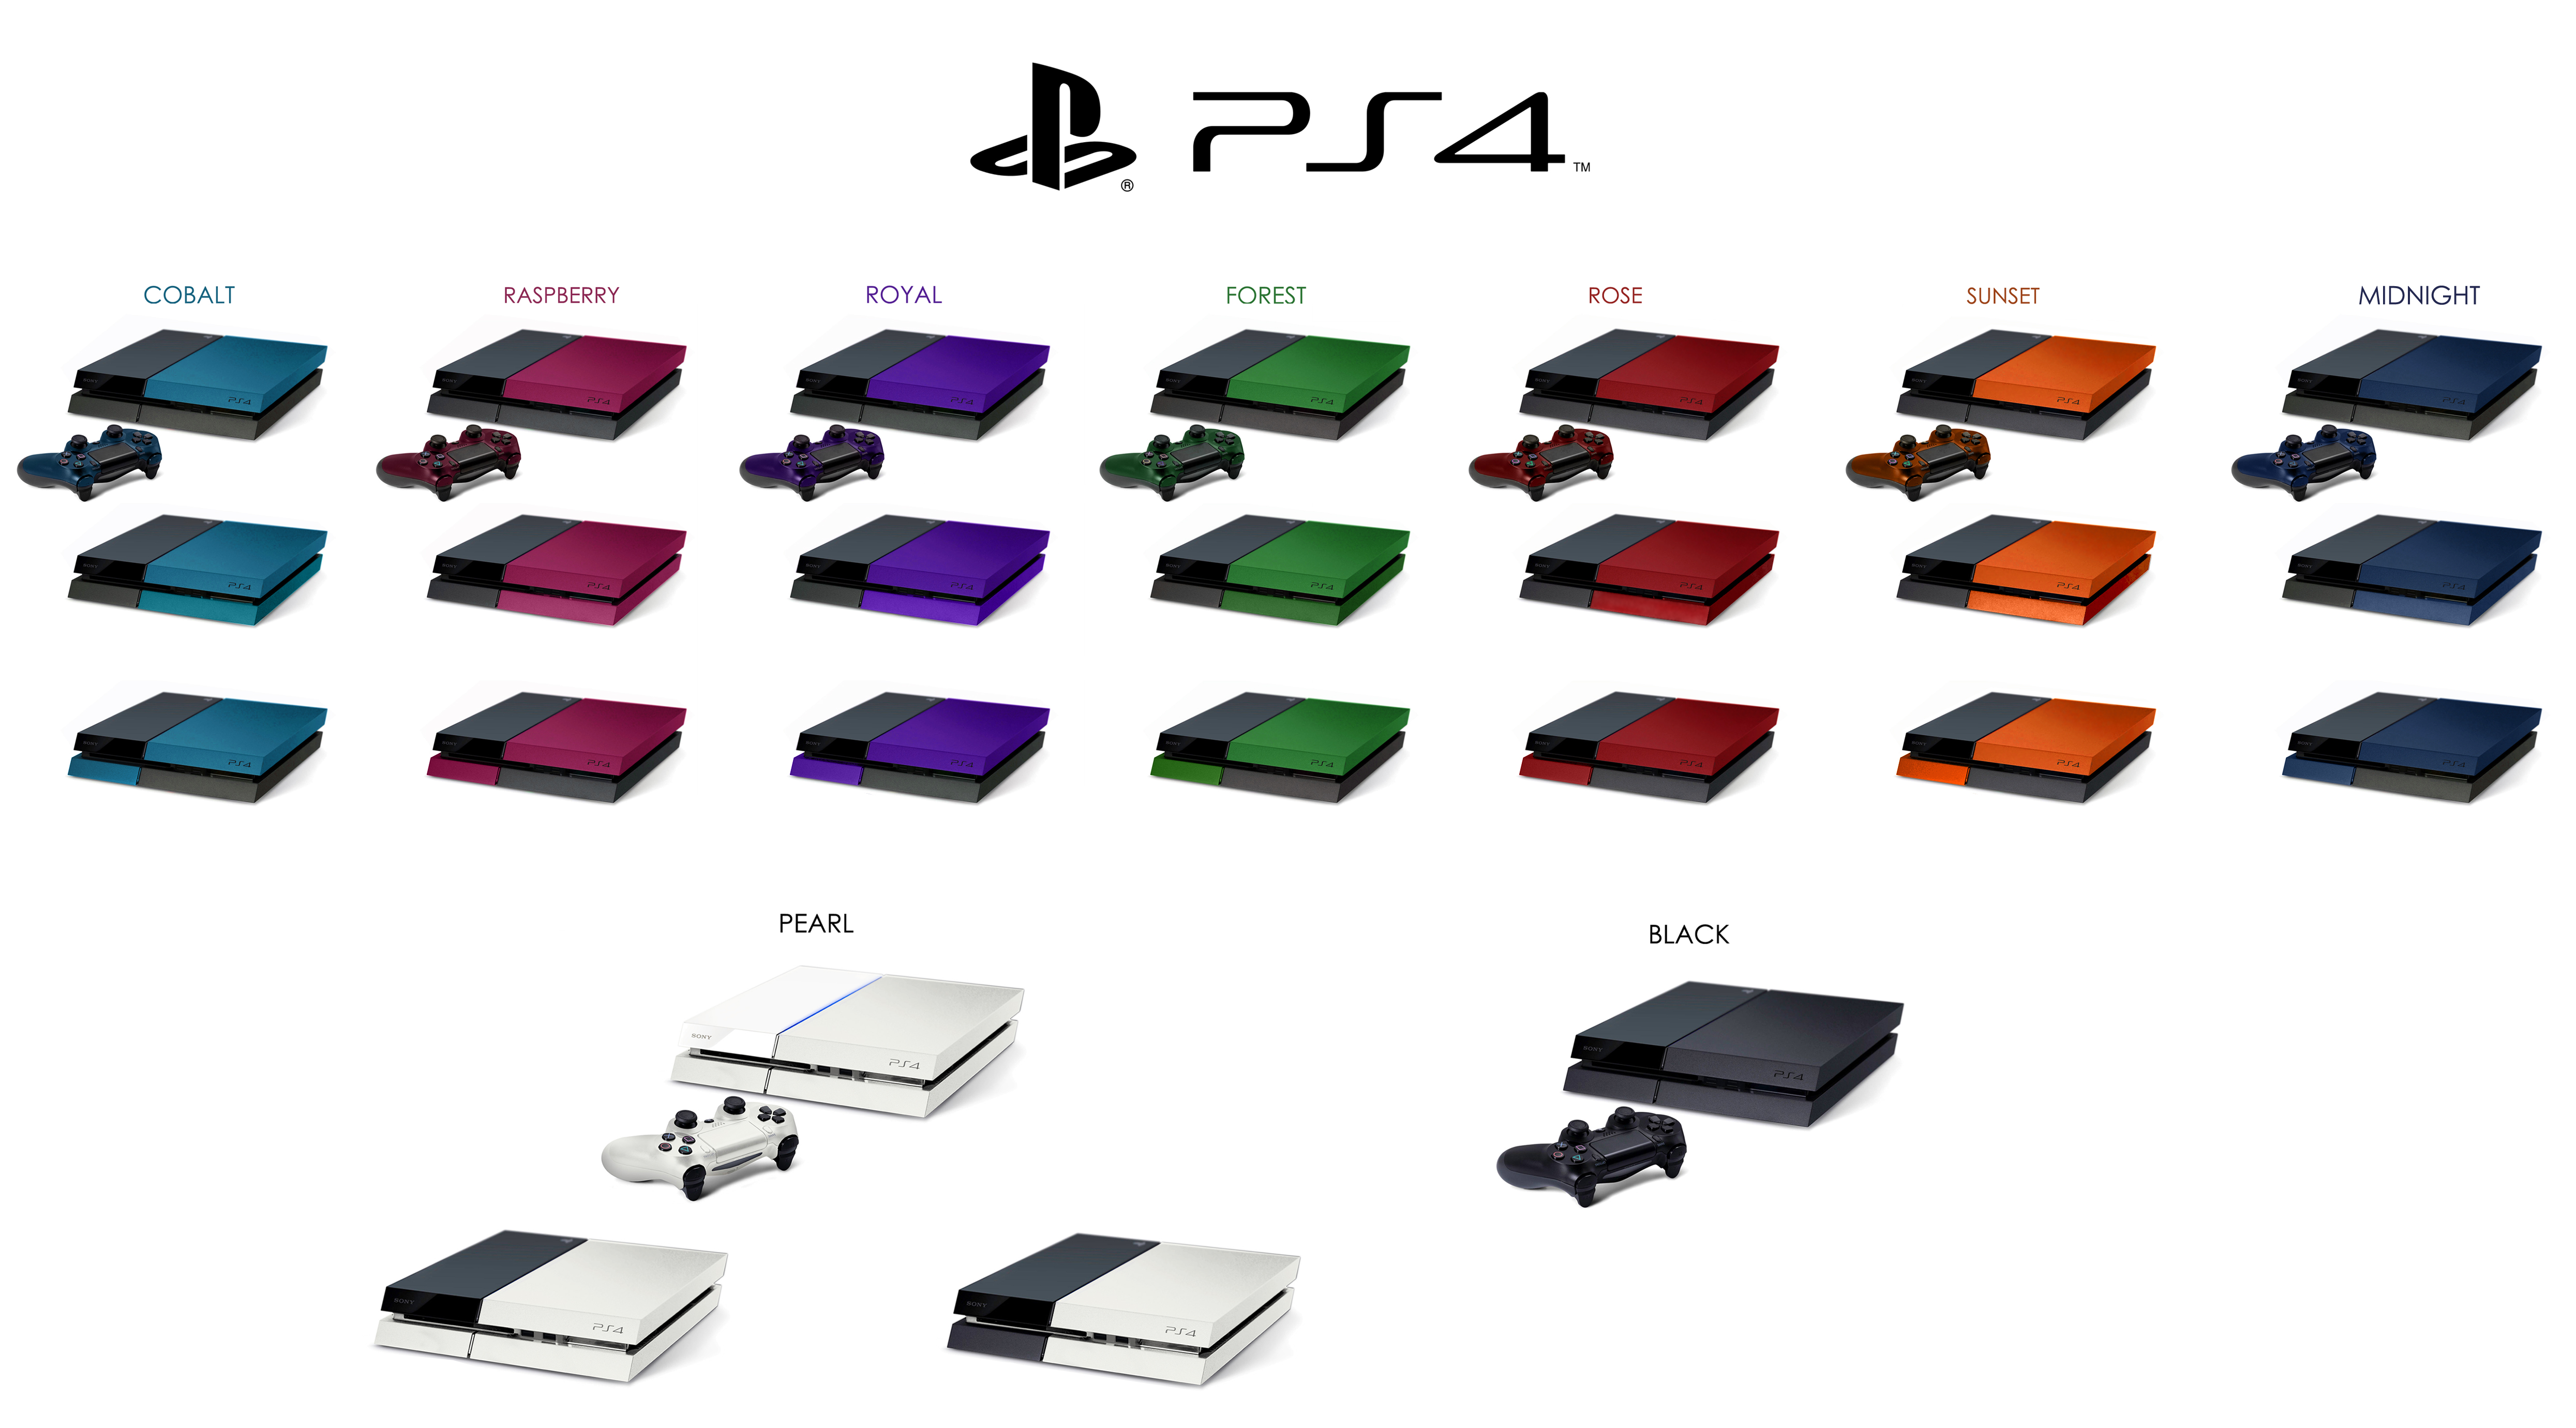 des ps4 de toutes les couleurs sur le forum playstation 4 04 07 2013 23 40 57. Black Bedroom Furniture Sets. Home Design Ideas